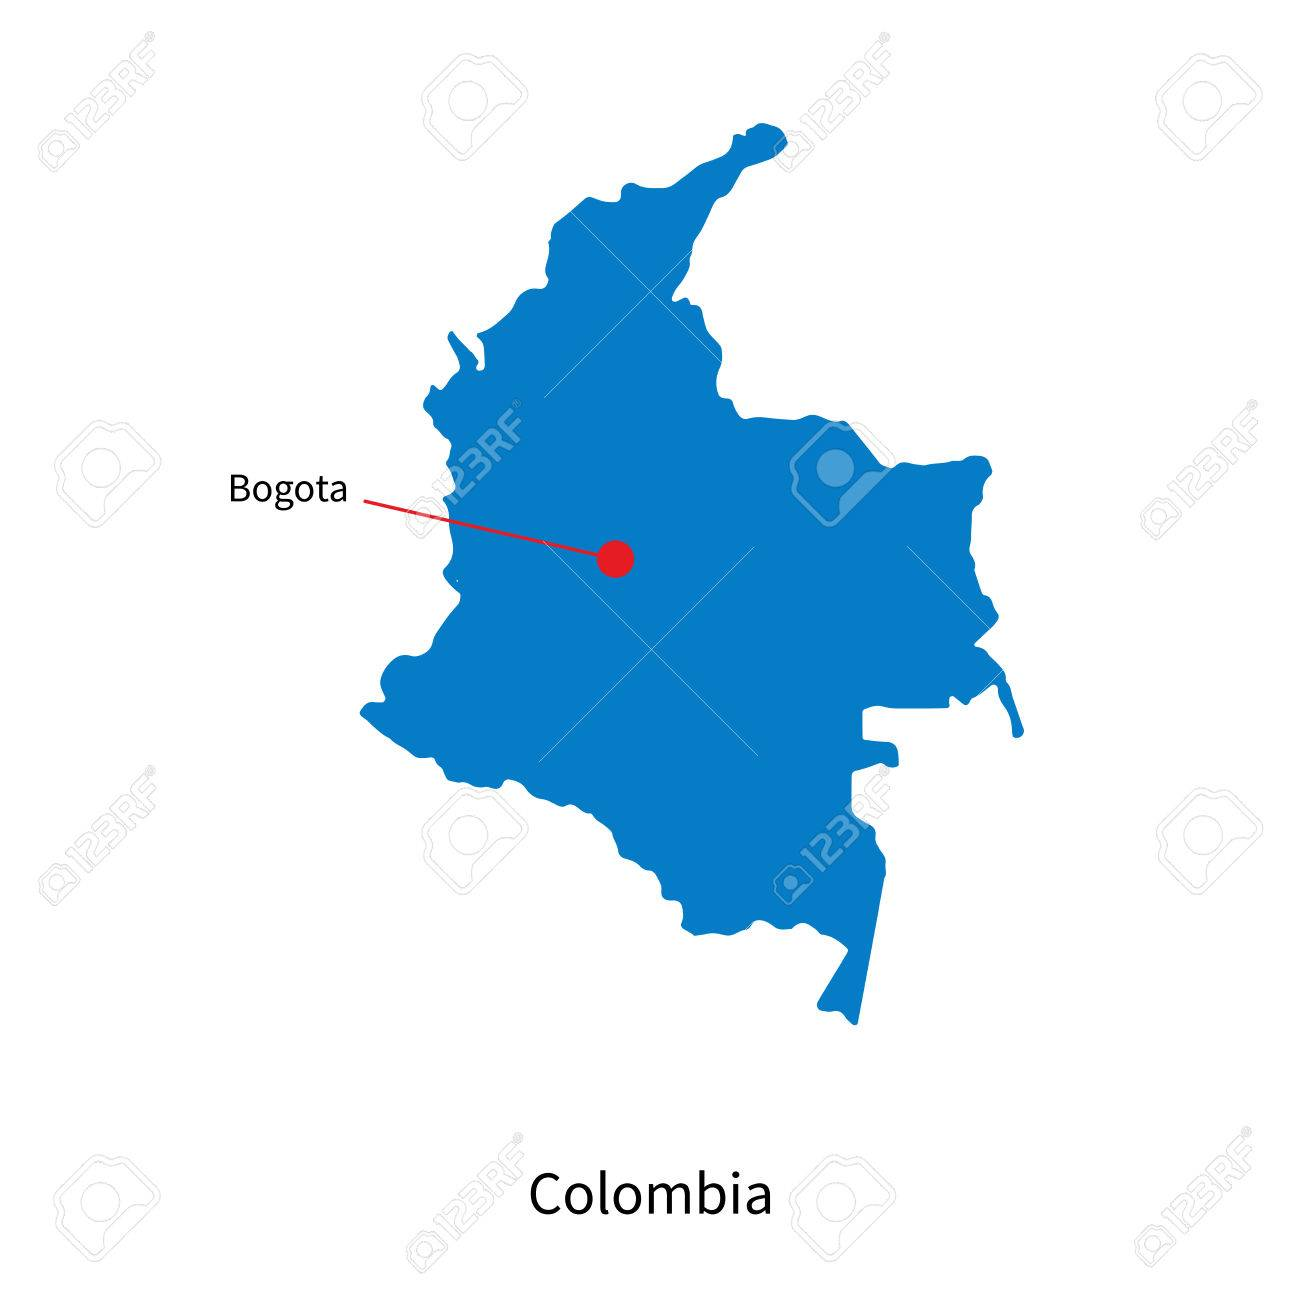 Detailed Vector Map Of Colombia And Capital City Bogota Royalty Free ...